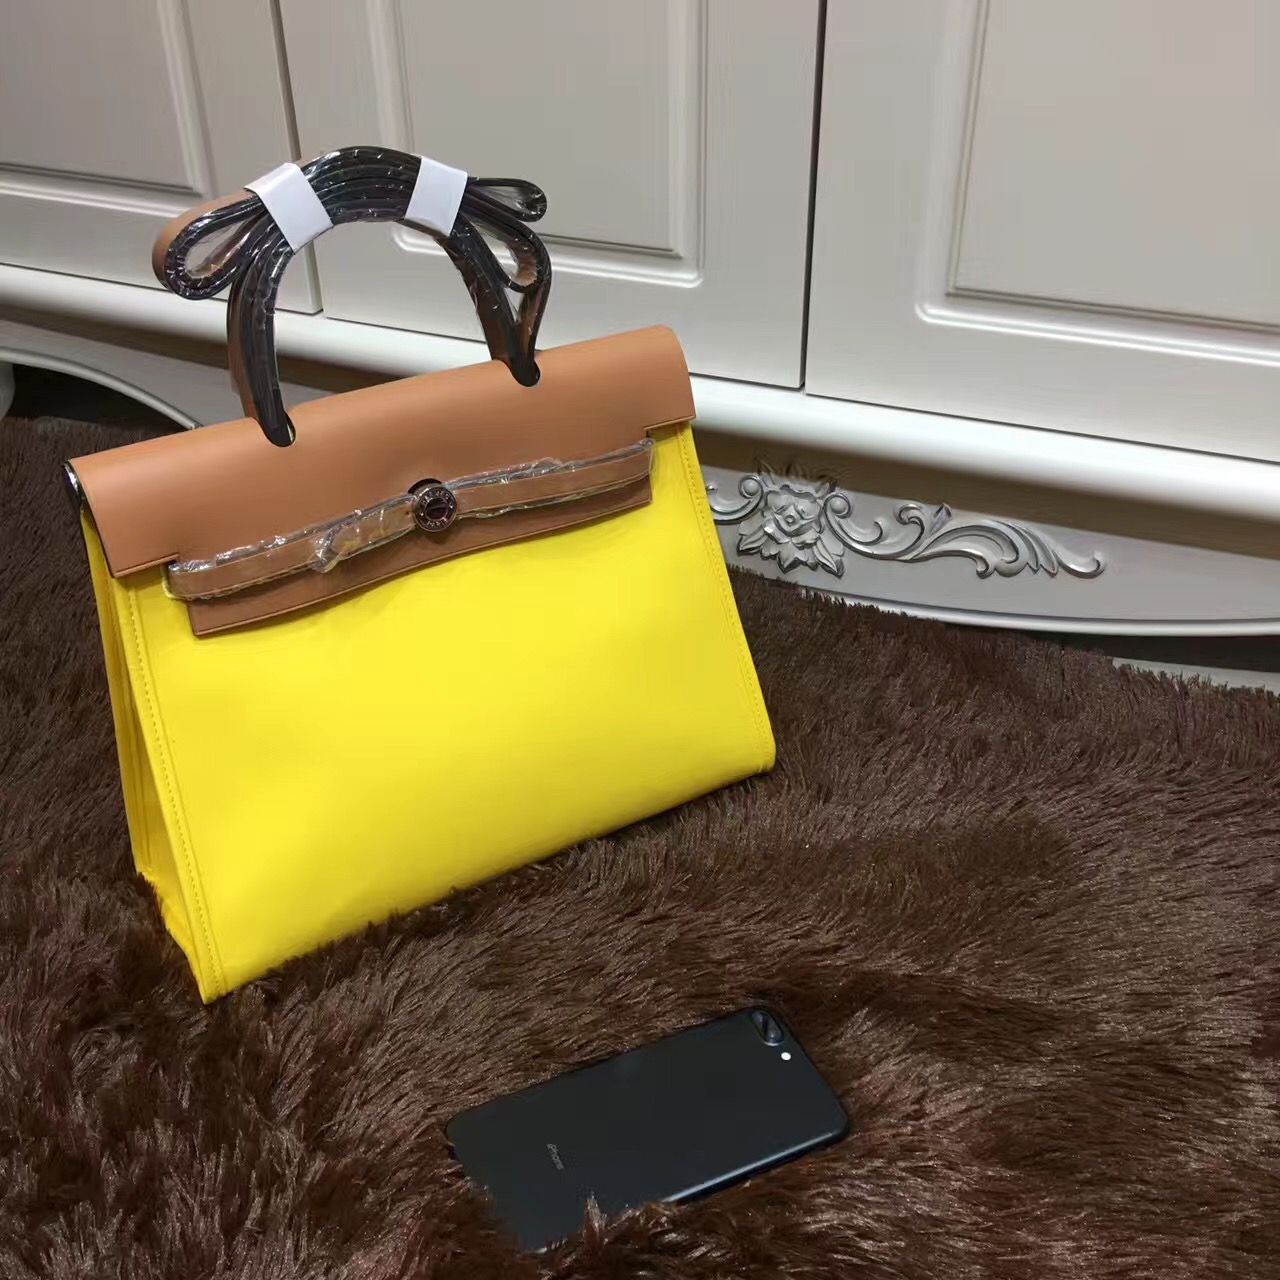 Hermes Herbag 31cm Yellow Canvas Bag